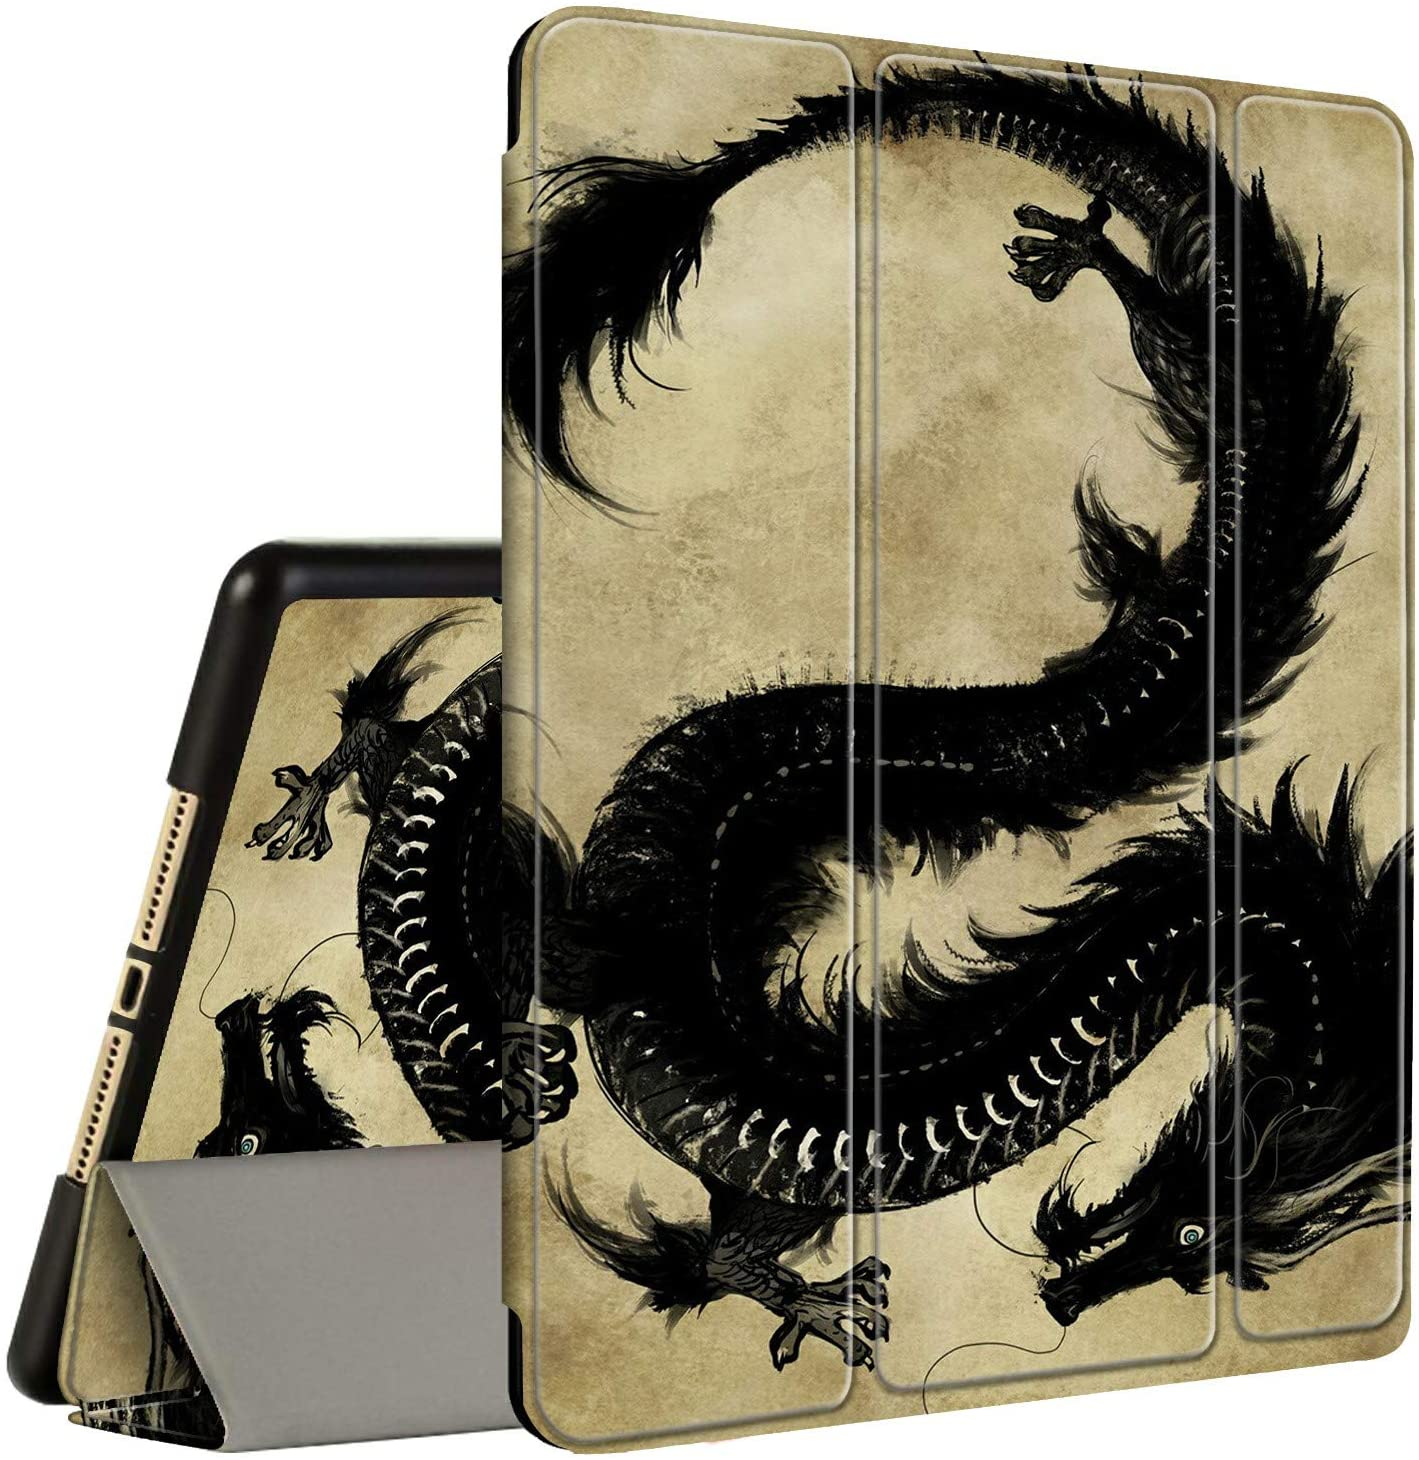 iPad Air 3 2019 Case, iPad Pro 10.5 Inch Case 2017, Amook Tri-fold Smart Cover Stand TPU Case with Pencil Holder Auto Sleep/Wake for Apple iPad Pro/Air 3rd Gen 10.5- Dragon